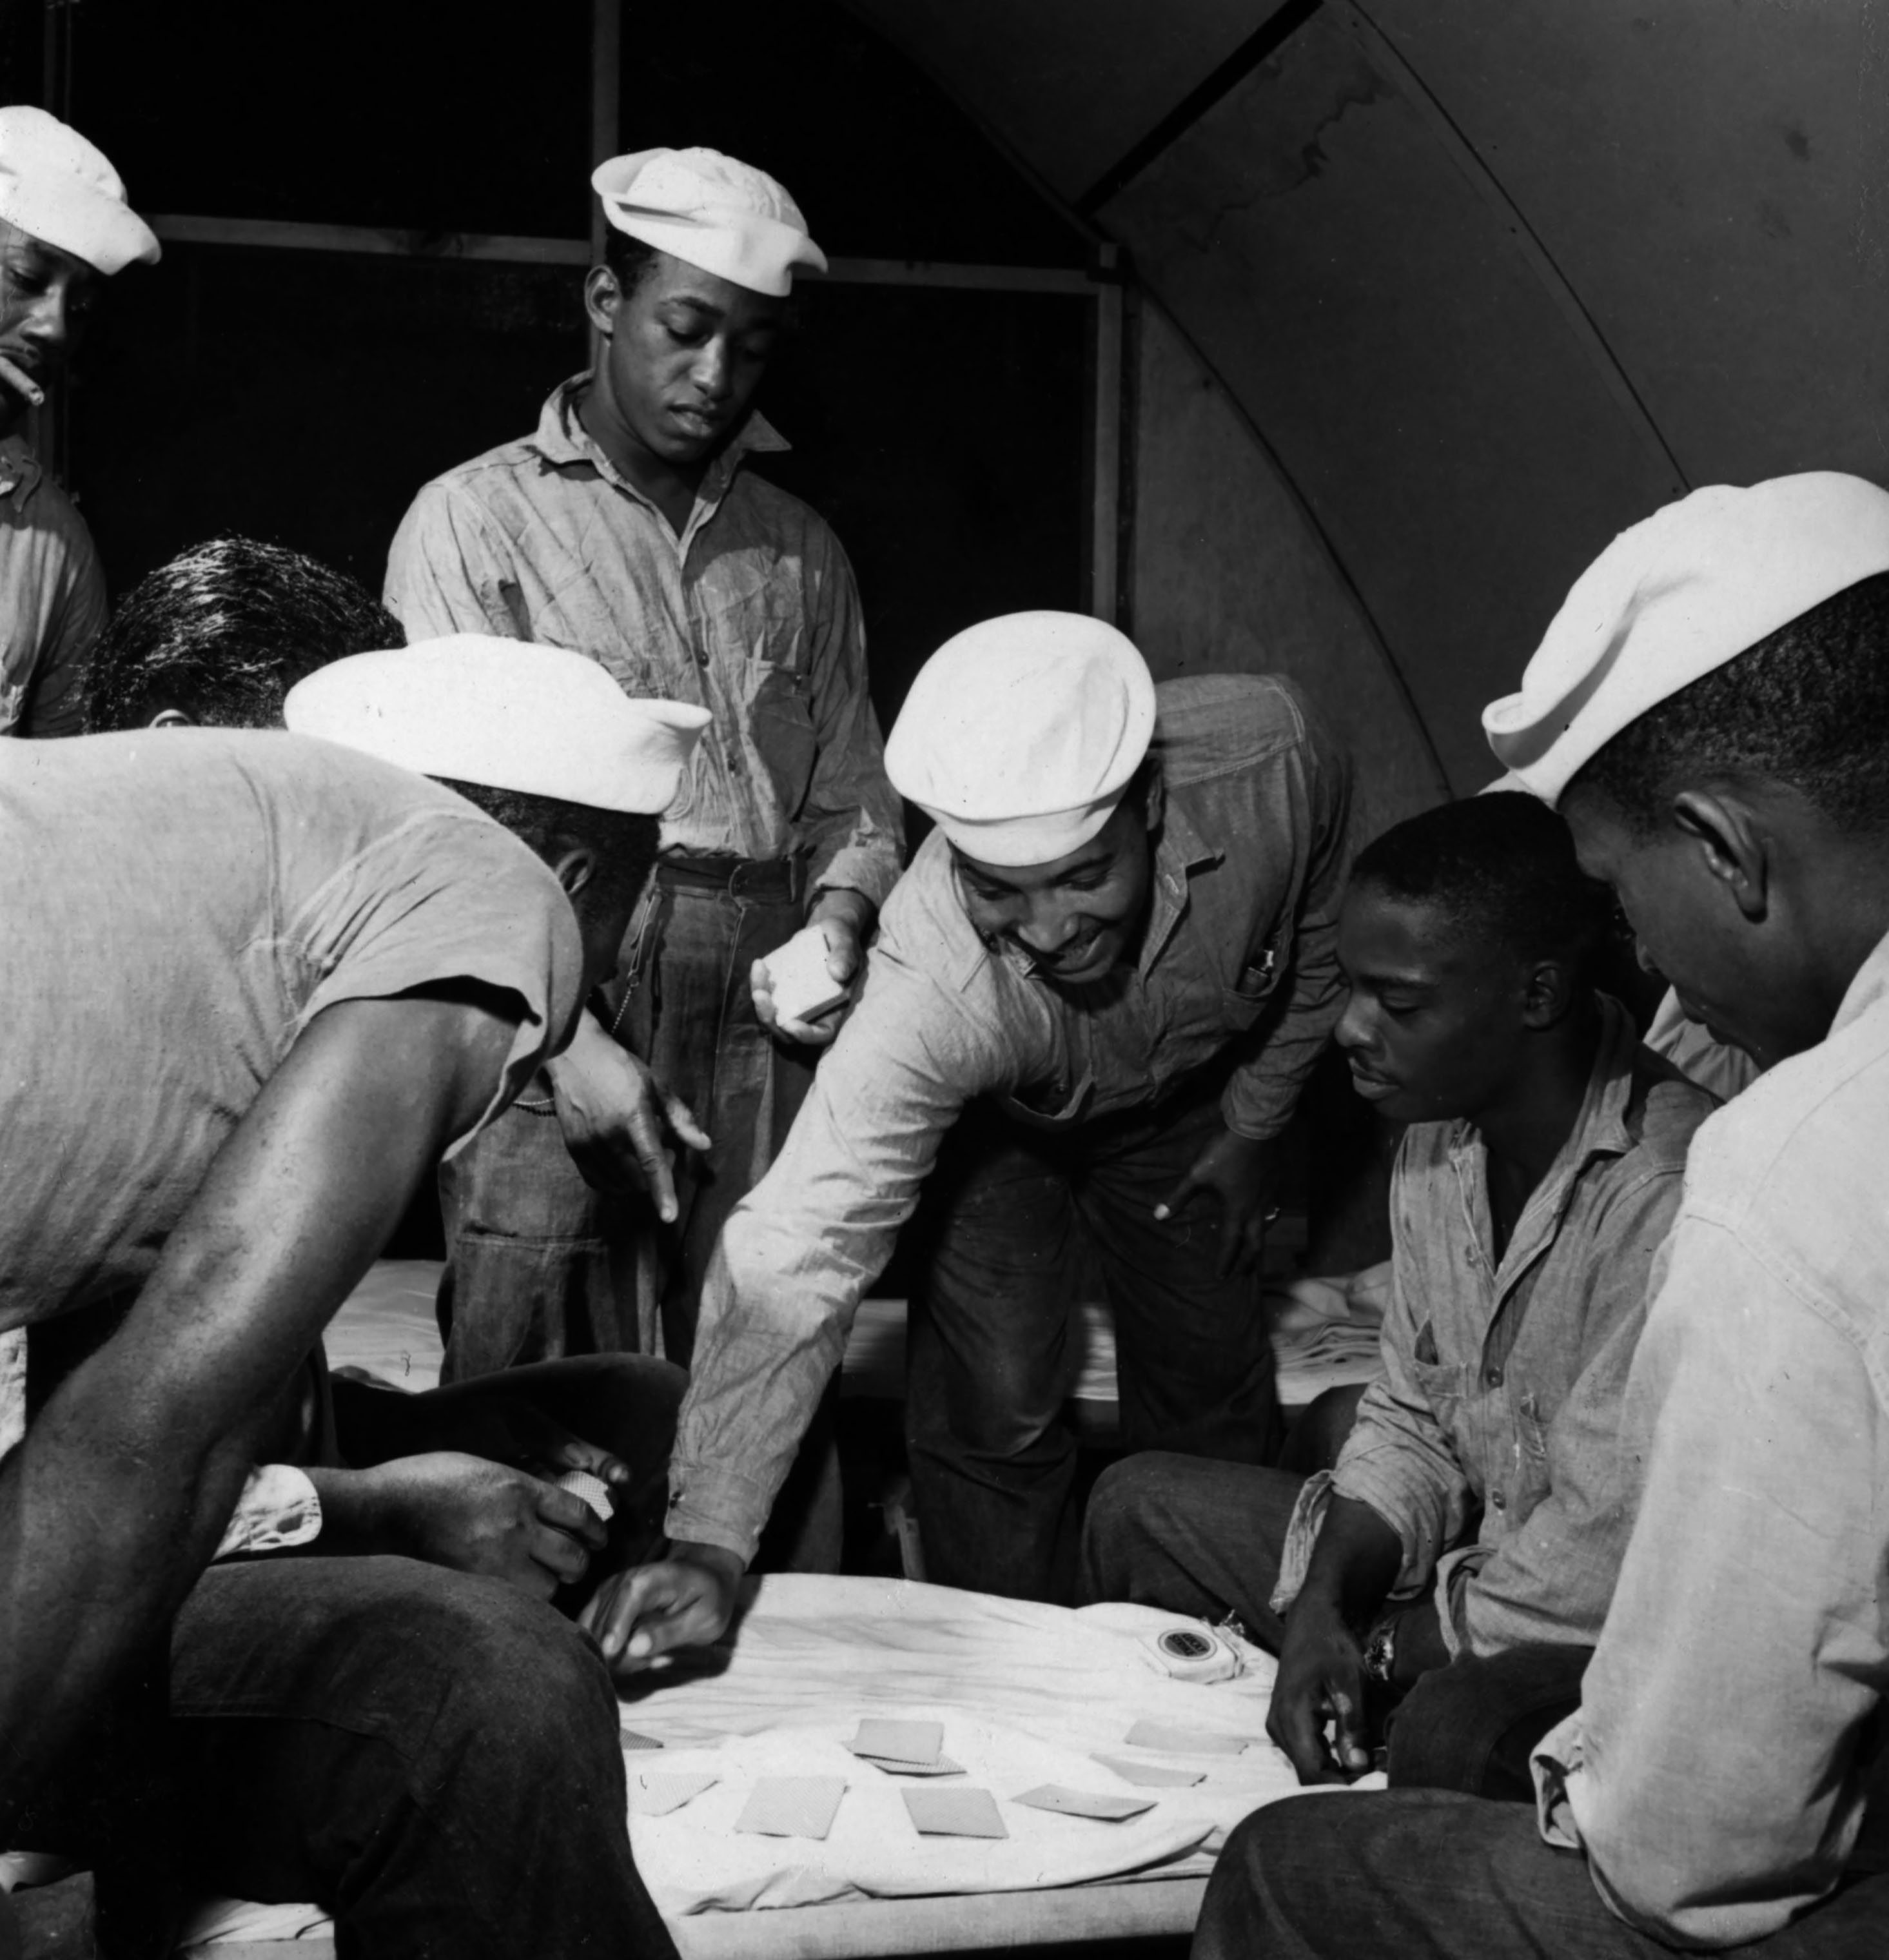 Sailors playing cards at the U.S. Naval Supply Depot on Guam.